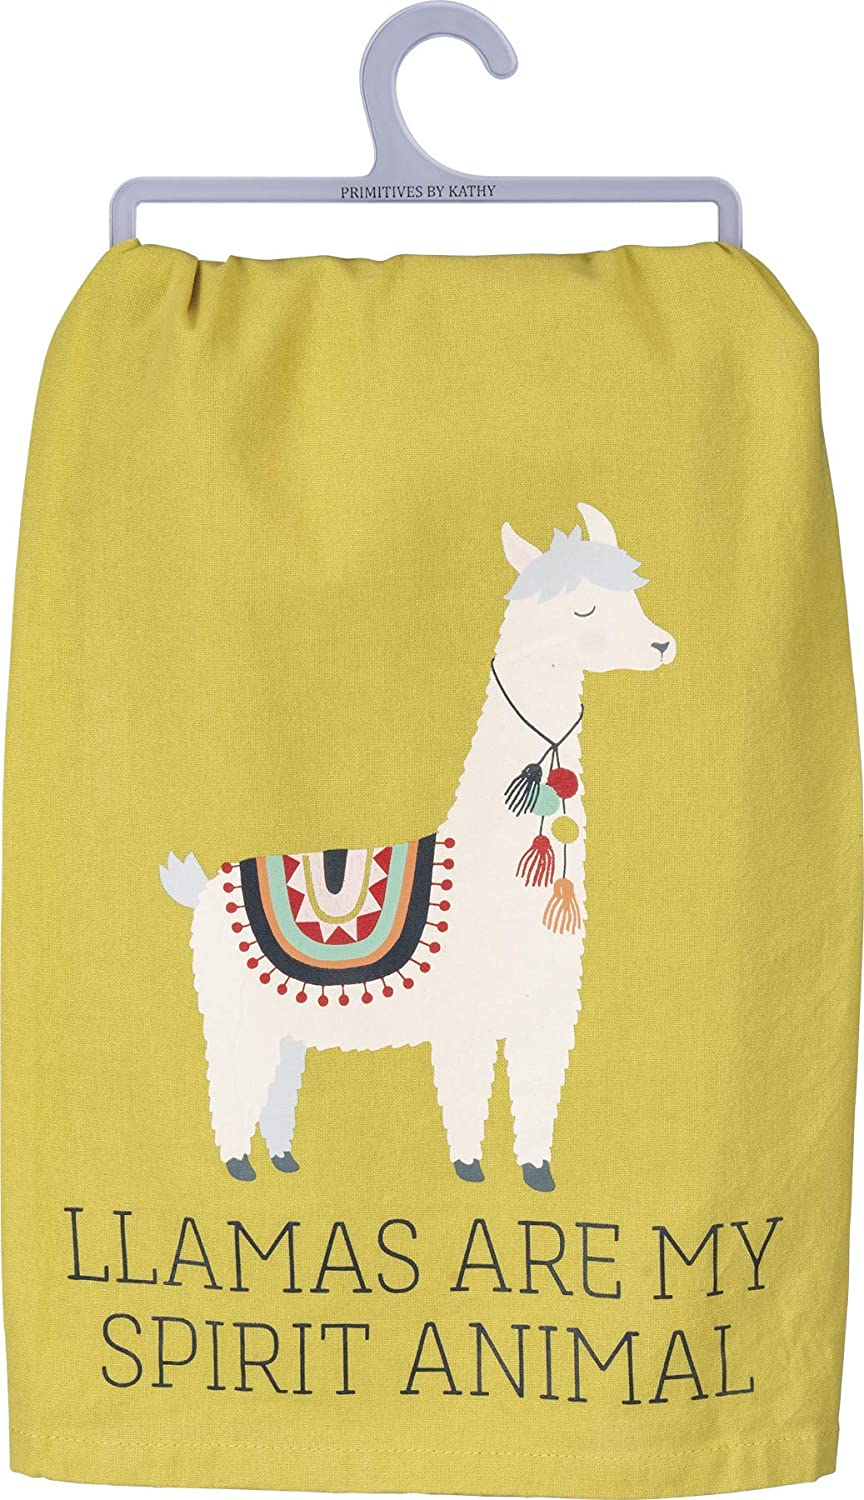 Primitives by Kathy Dish Towel - Llamas Are My Spirit Animal